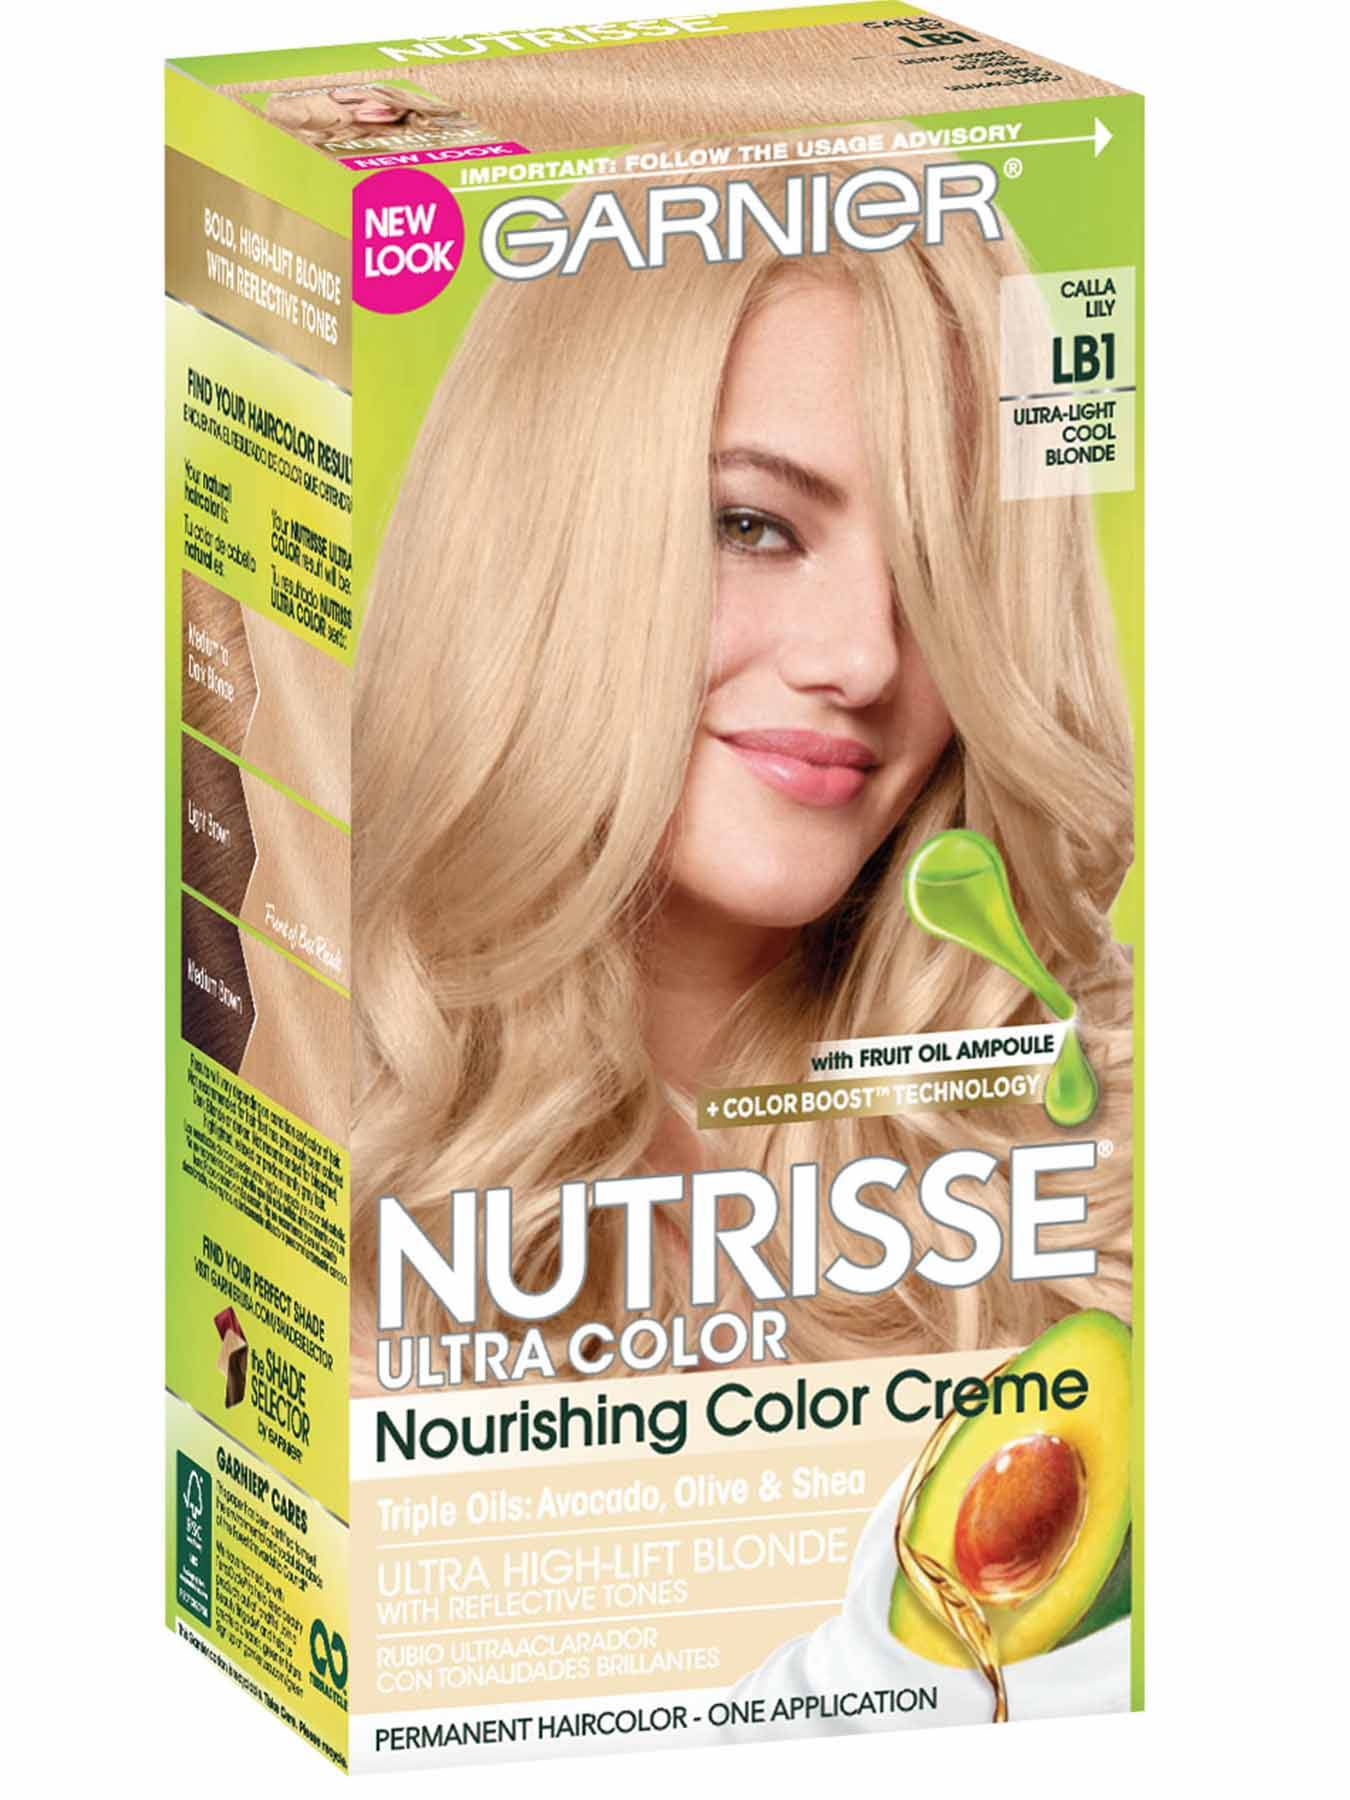 Nutrisse Ultra Color Bold Trendy Hair Color For Dark Hair Garnier